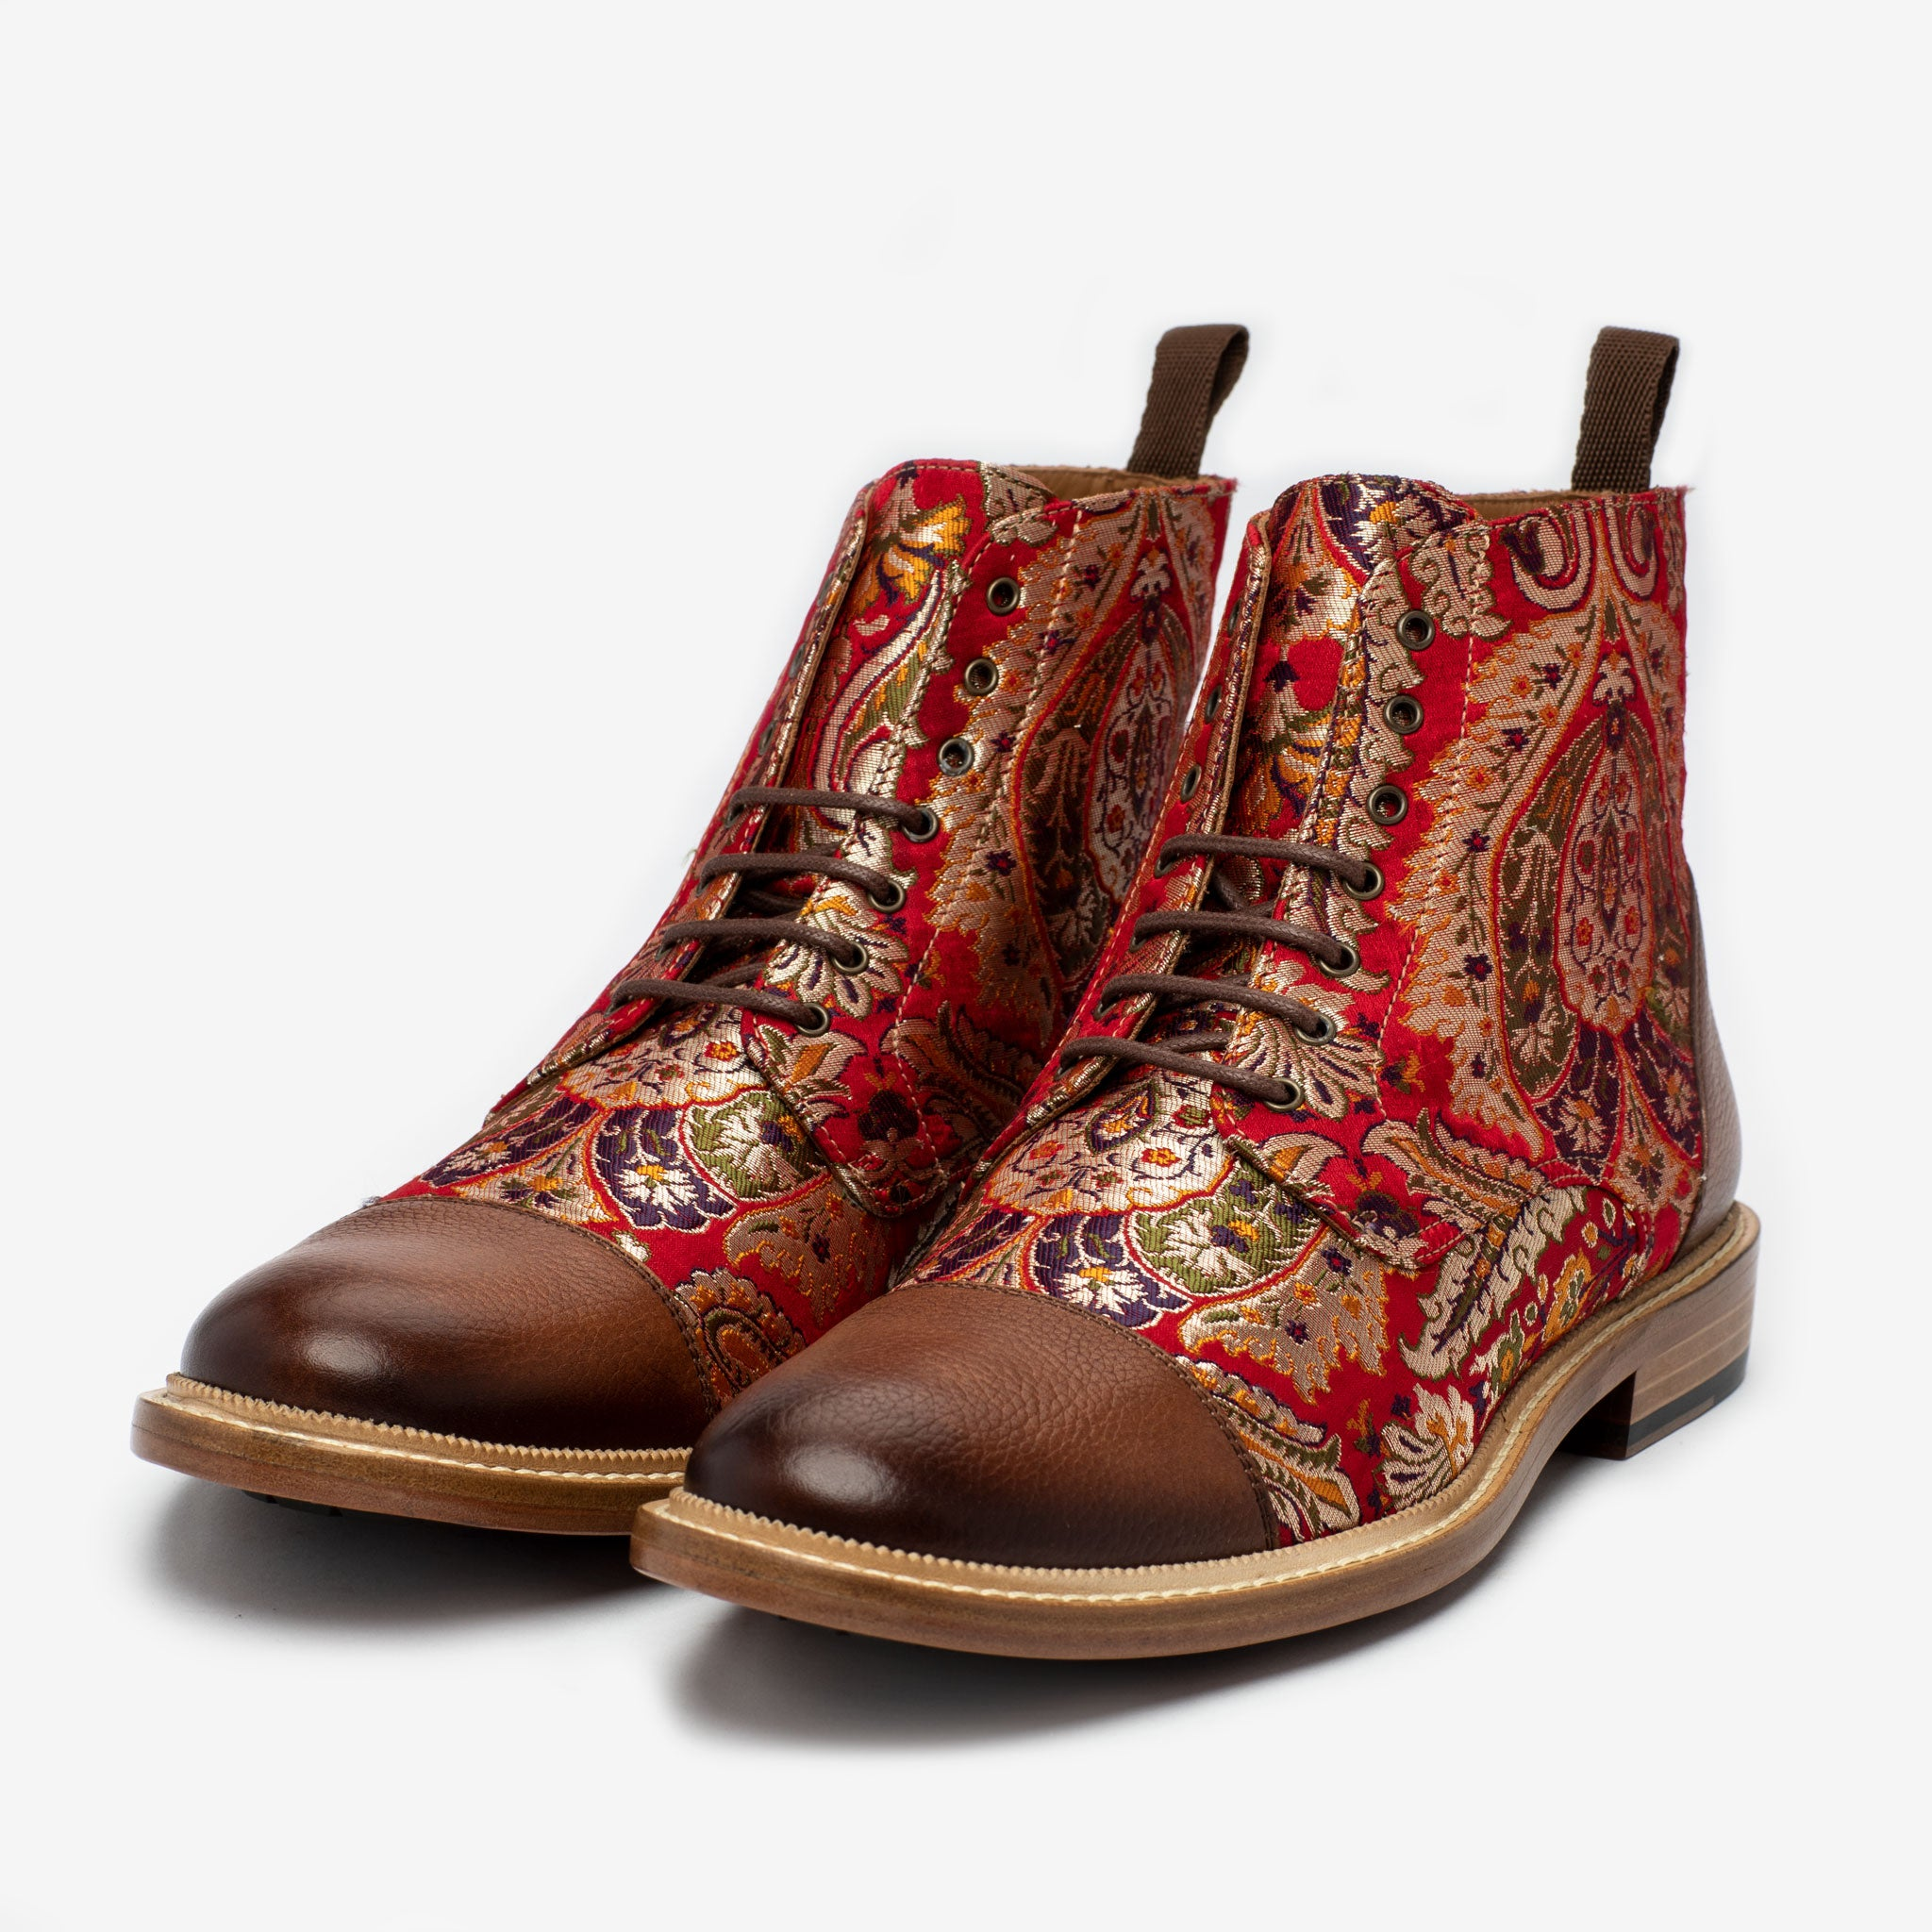 The Jack Boot in Red Paisley